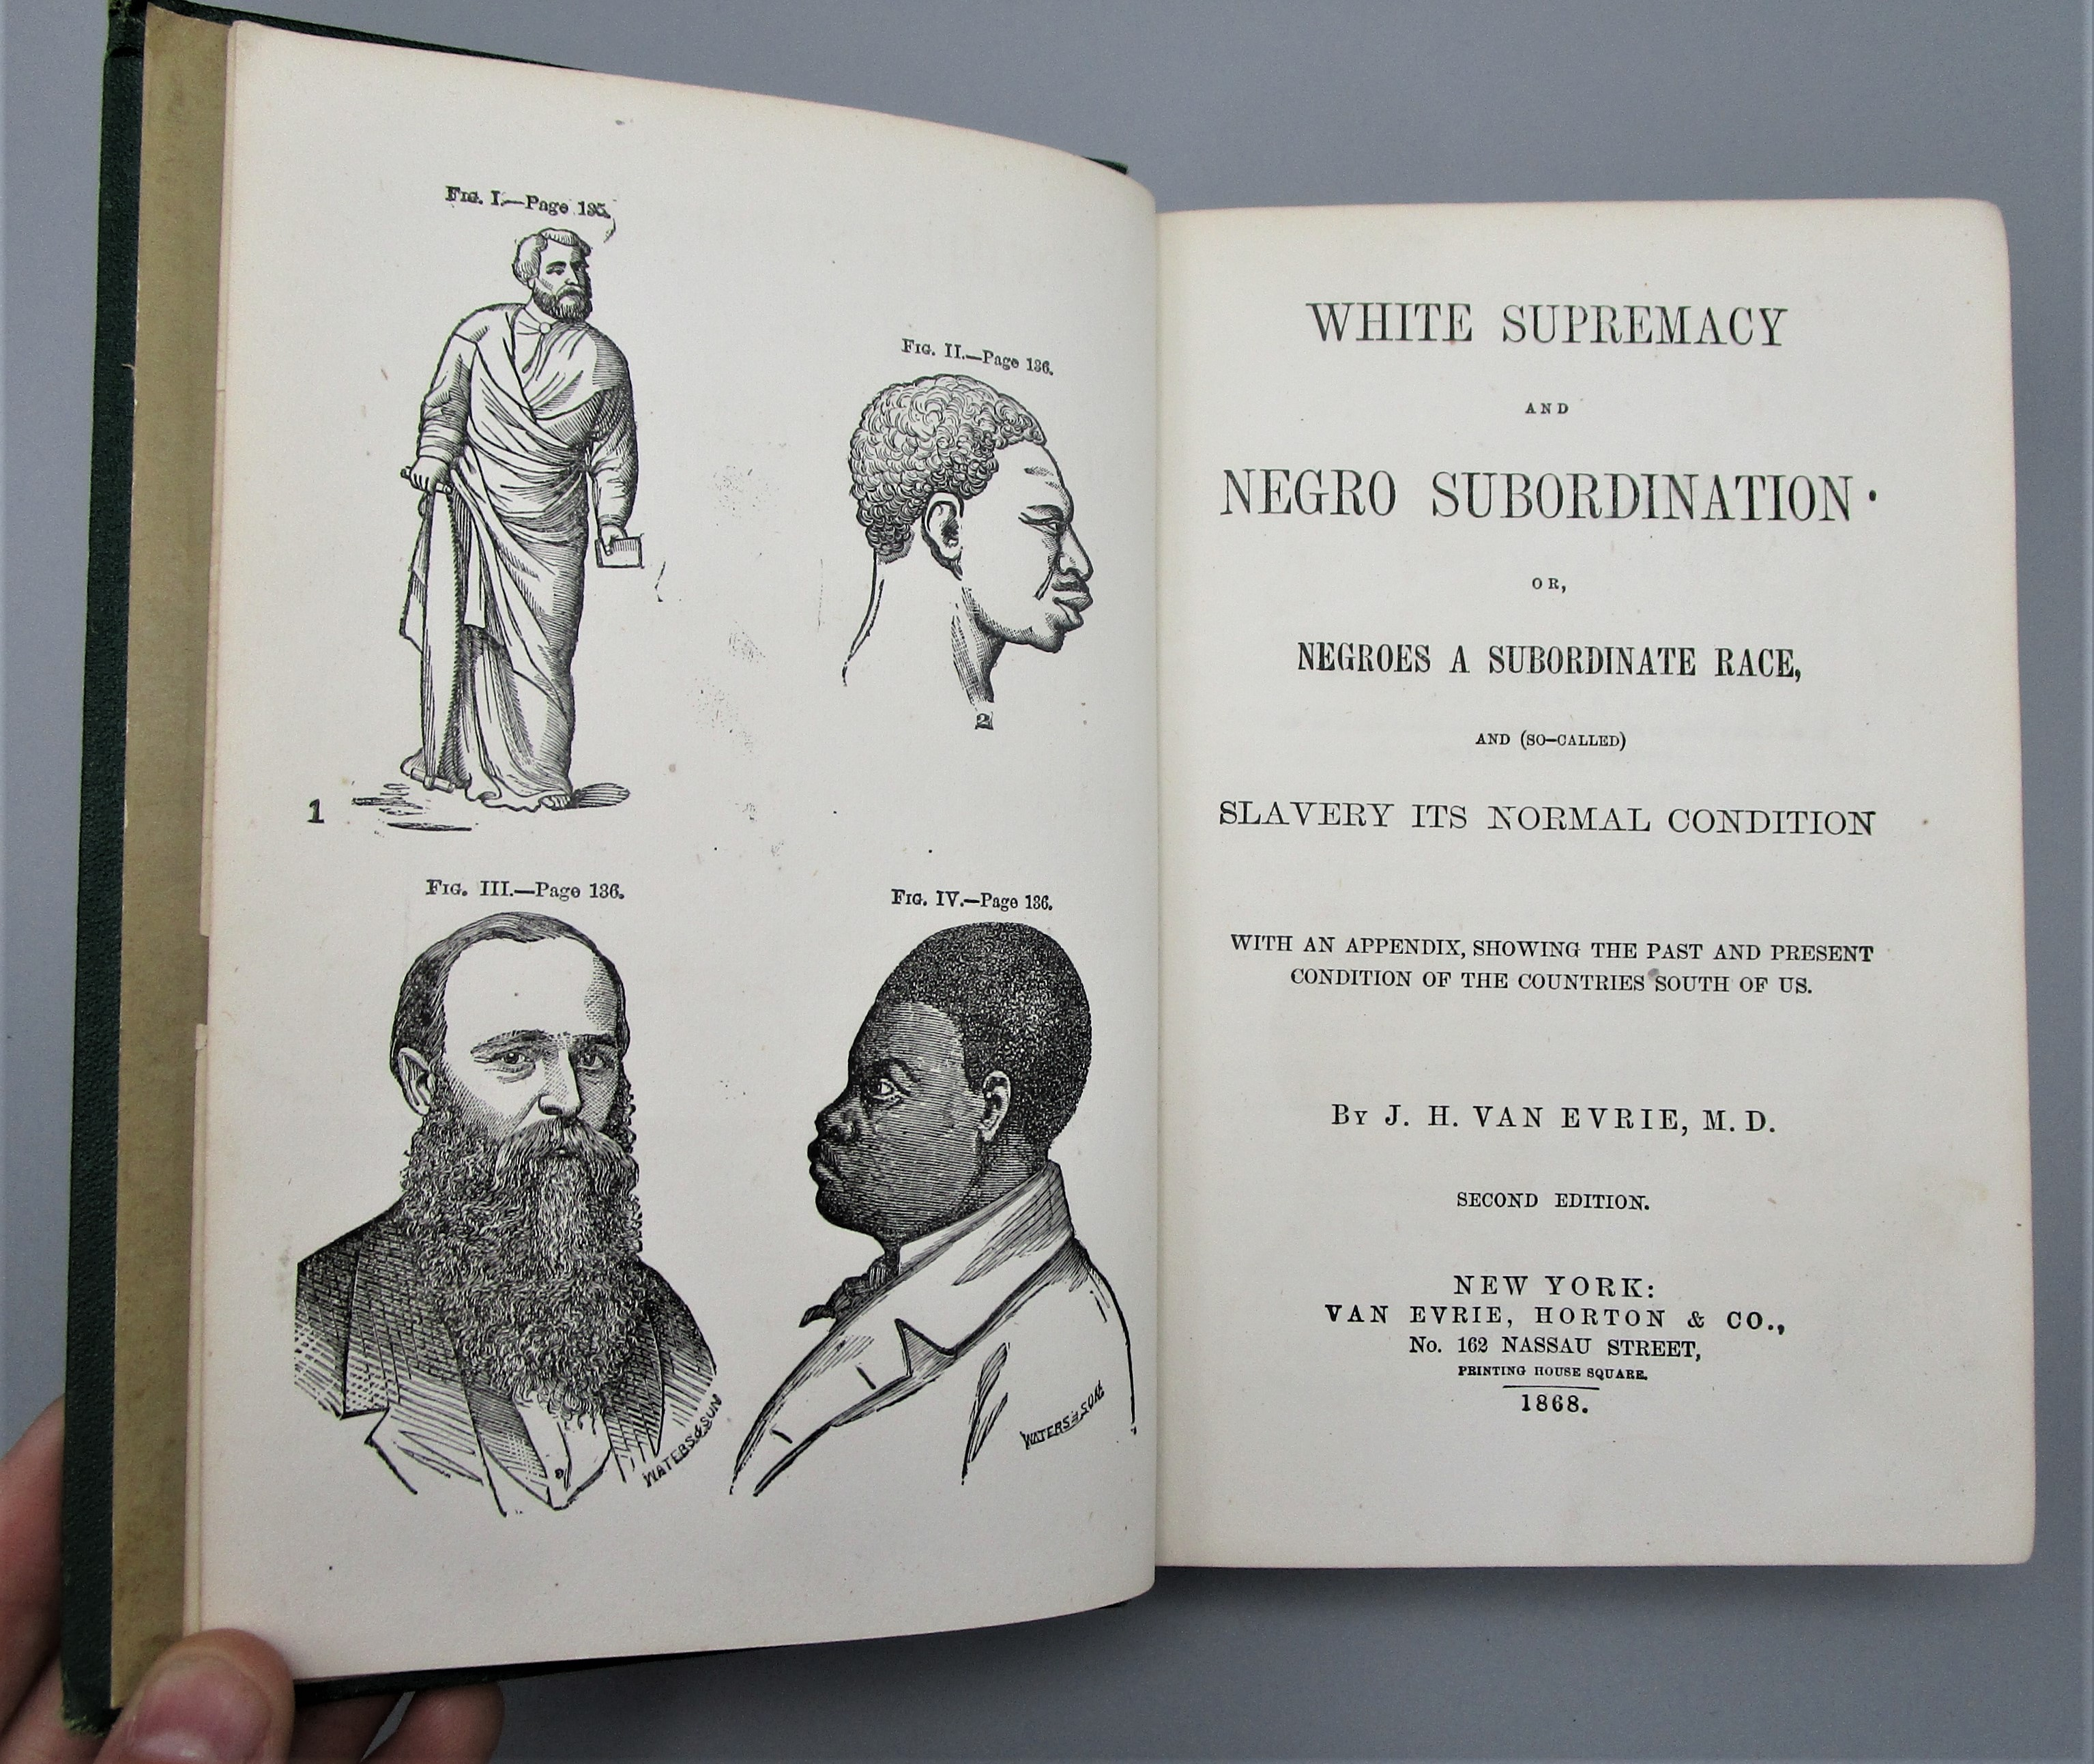 WHITE SUPREMACY AND NEGRO SUBORDINATION, by J.H. Van Evrie, M.D. - 1868